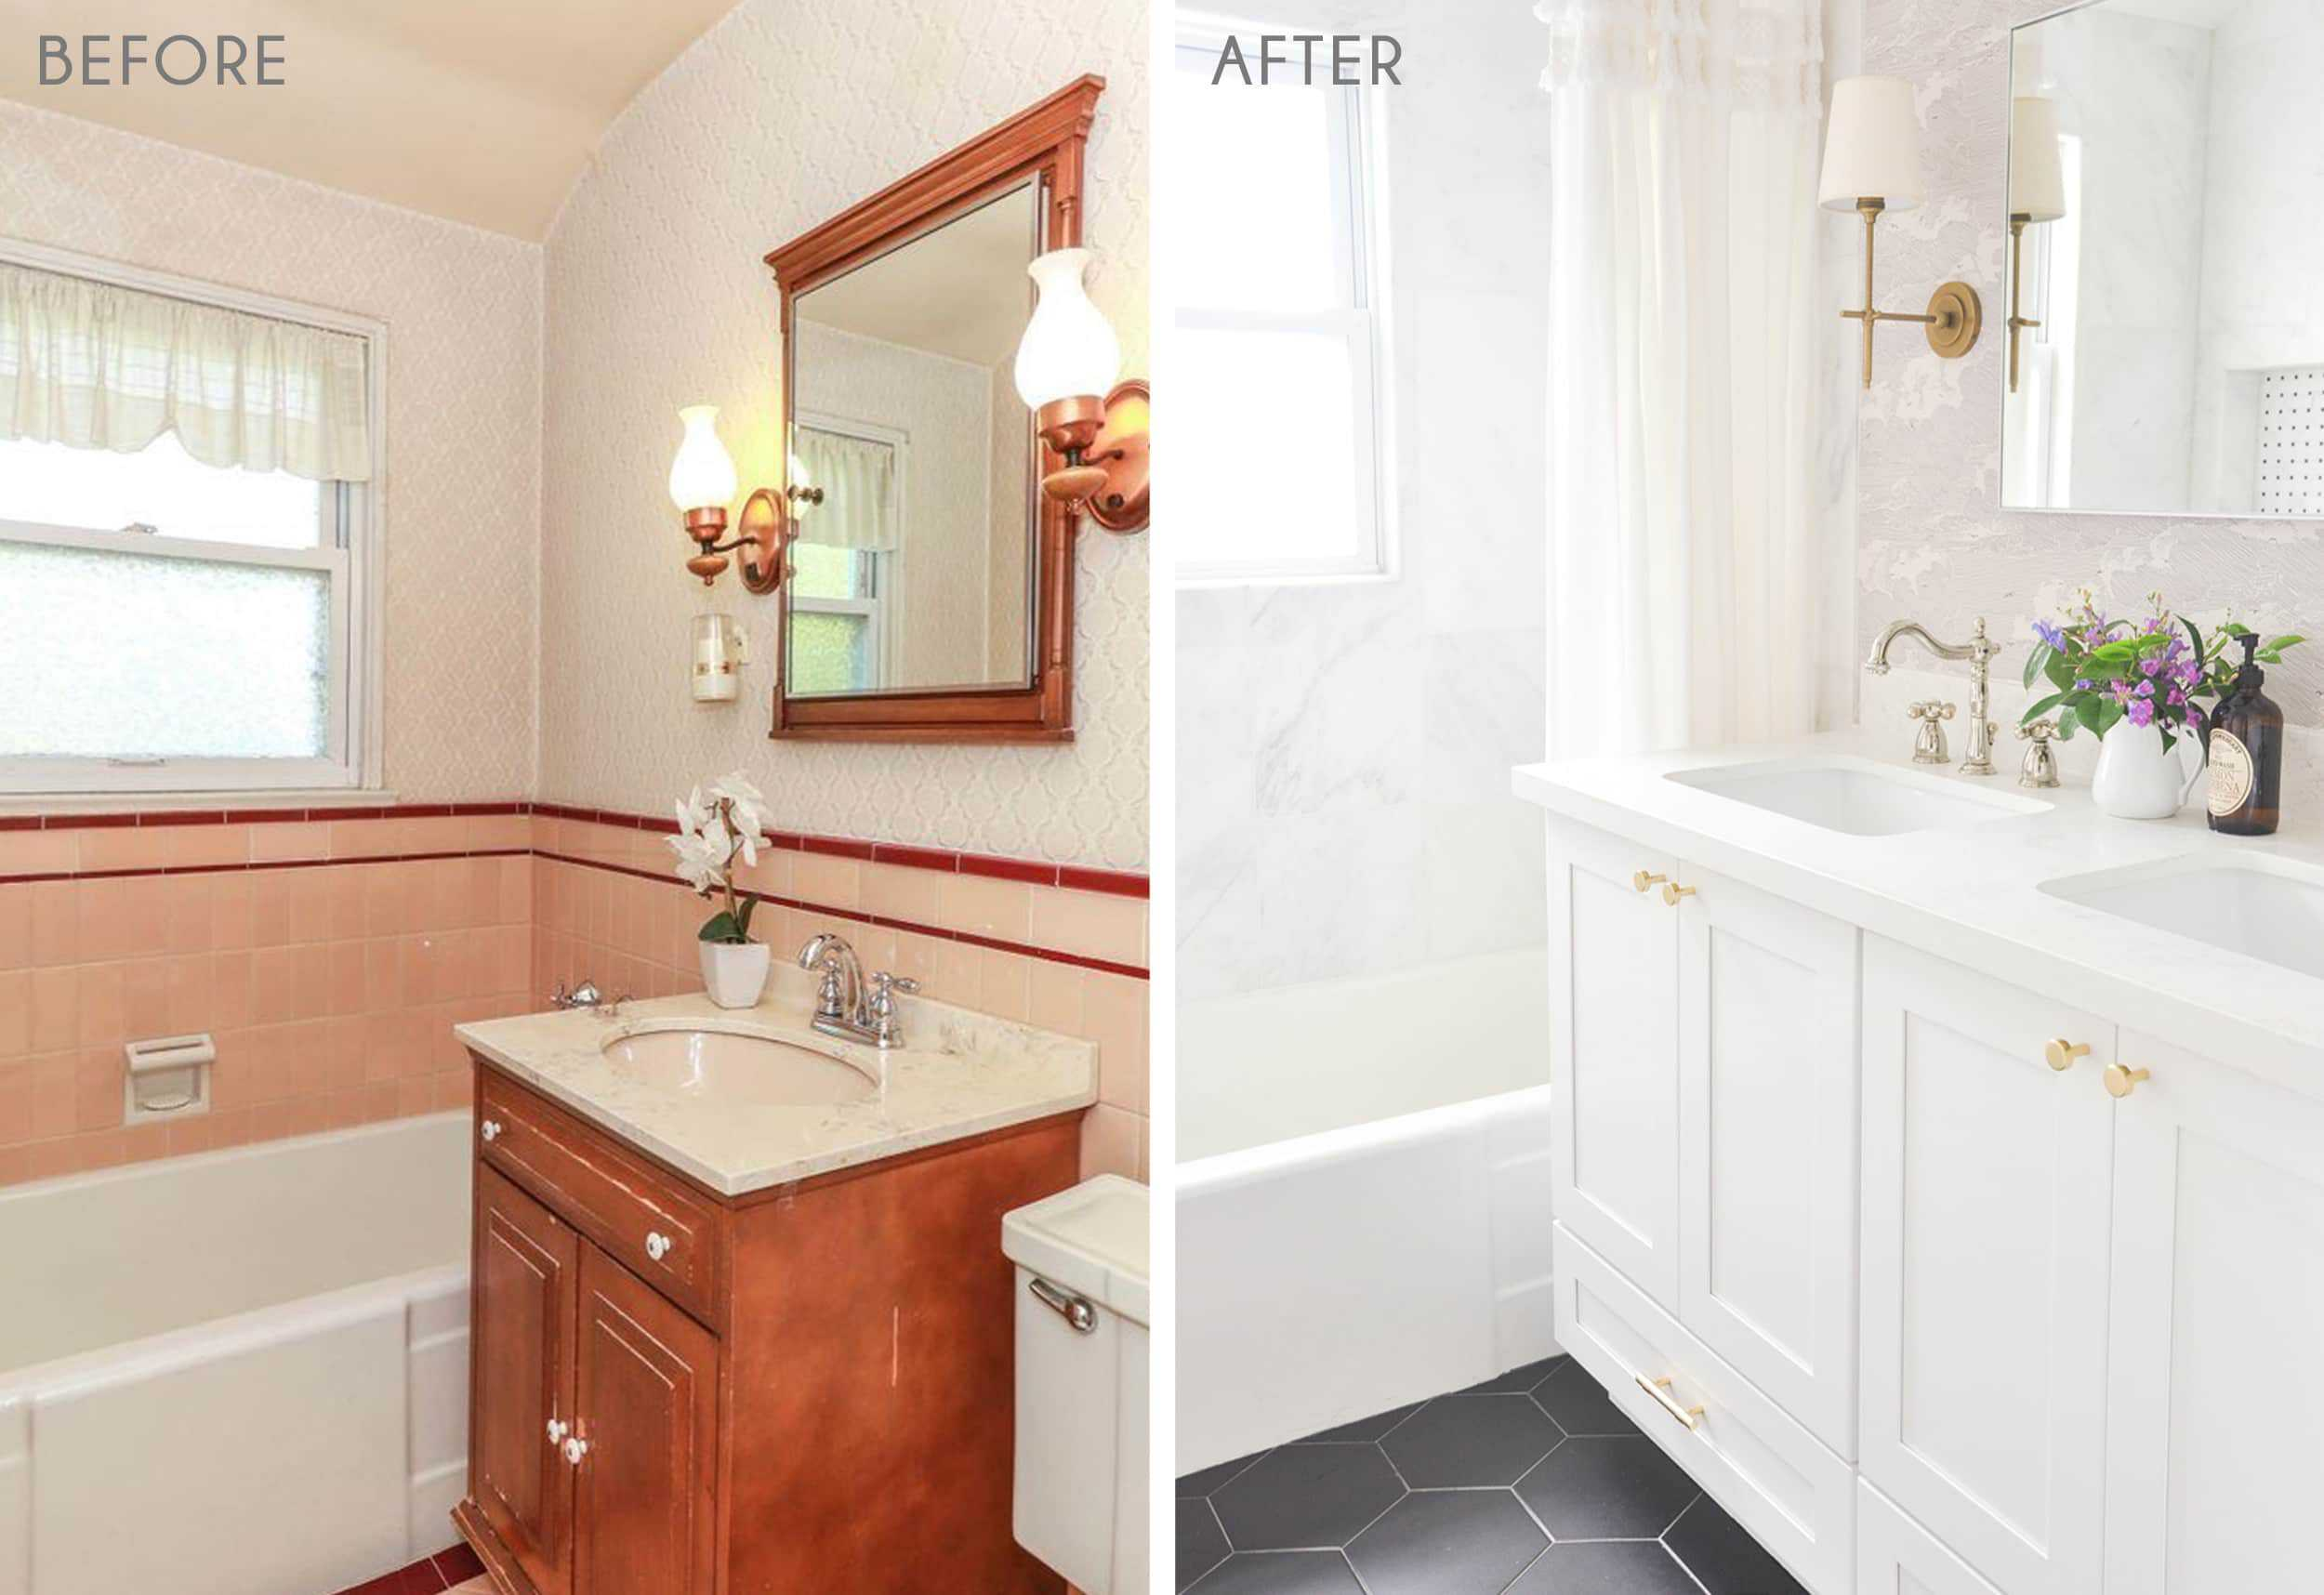 12 Diy Reader Bathroom Renovations Full Of Budget Friendly Tips